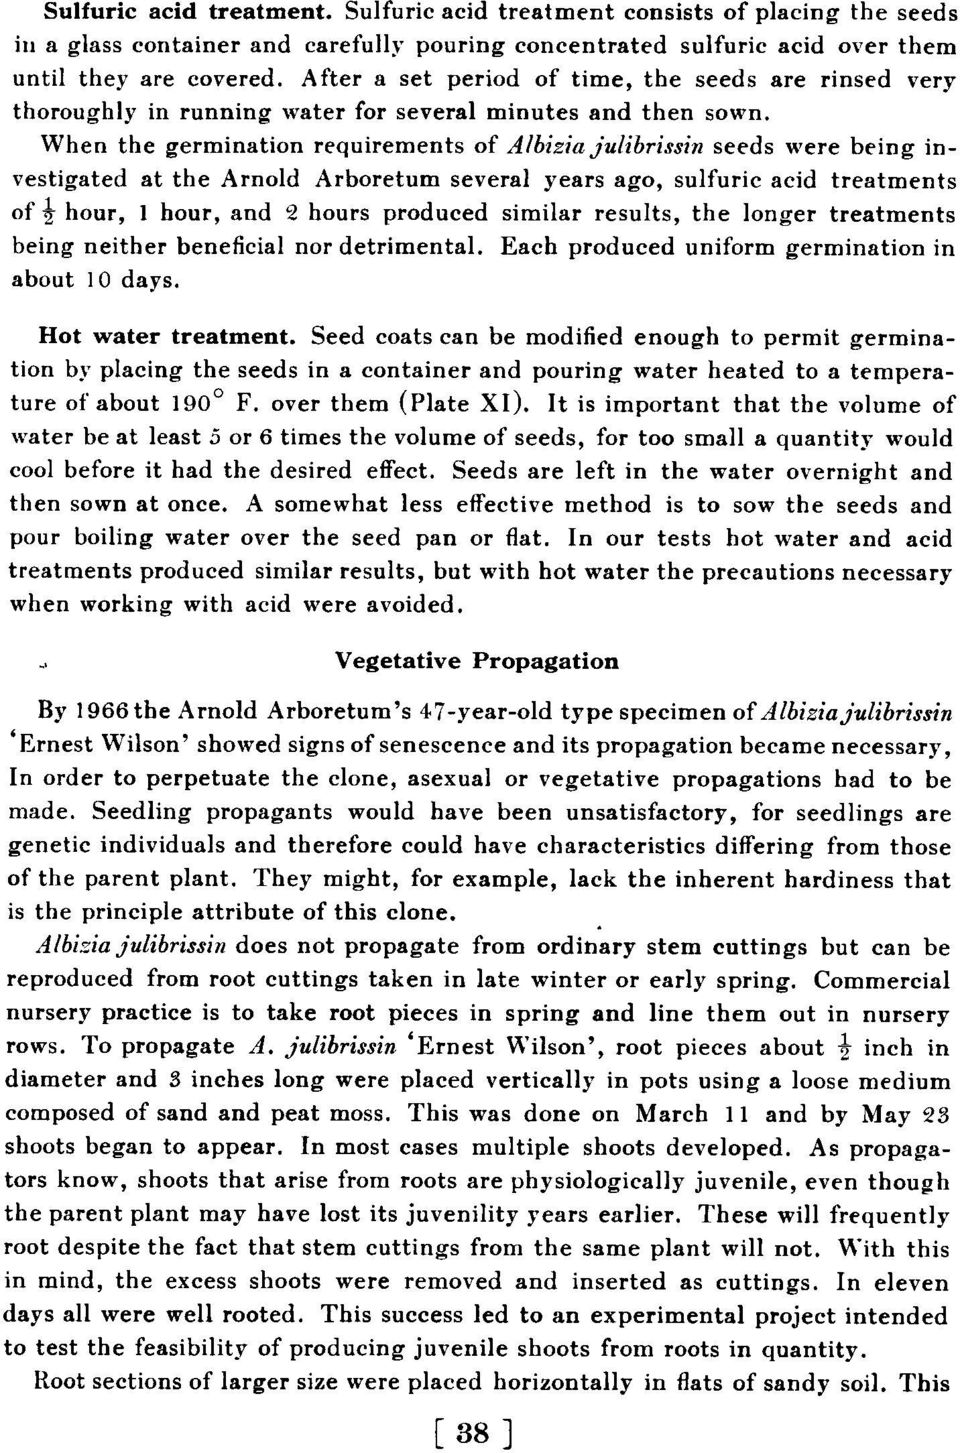 When the germination requirements of Albizia julibrissin seeds were being investigated at the Arnold Arboretum several years ago, sulfuric acid treatments of ~ hour, 1 hour, and 2 hours produced